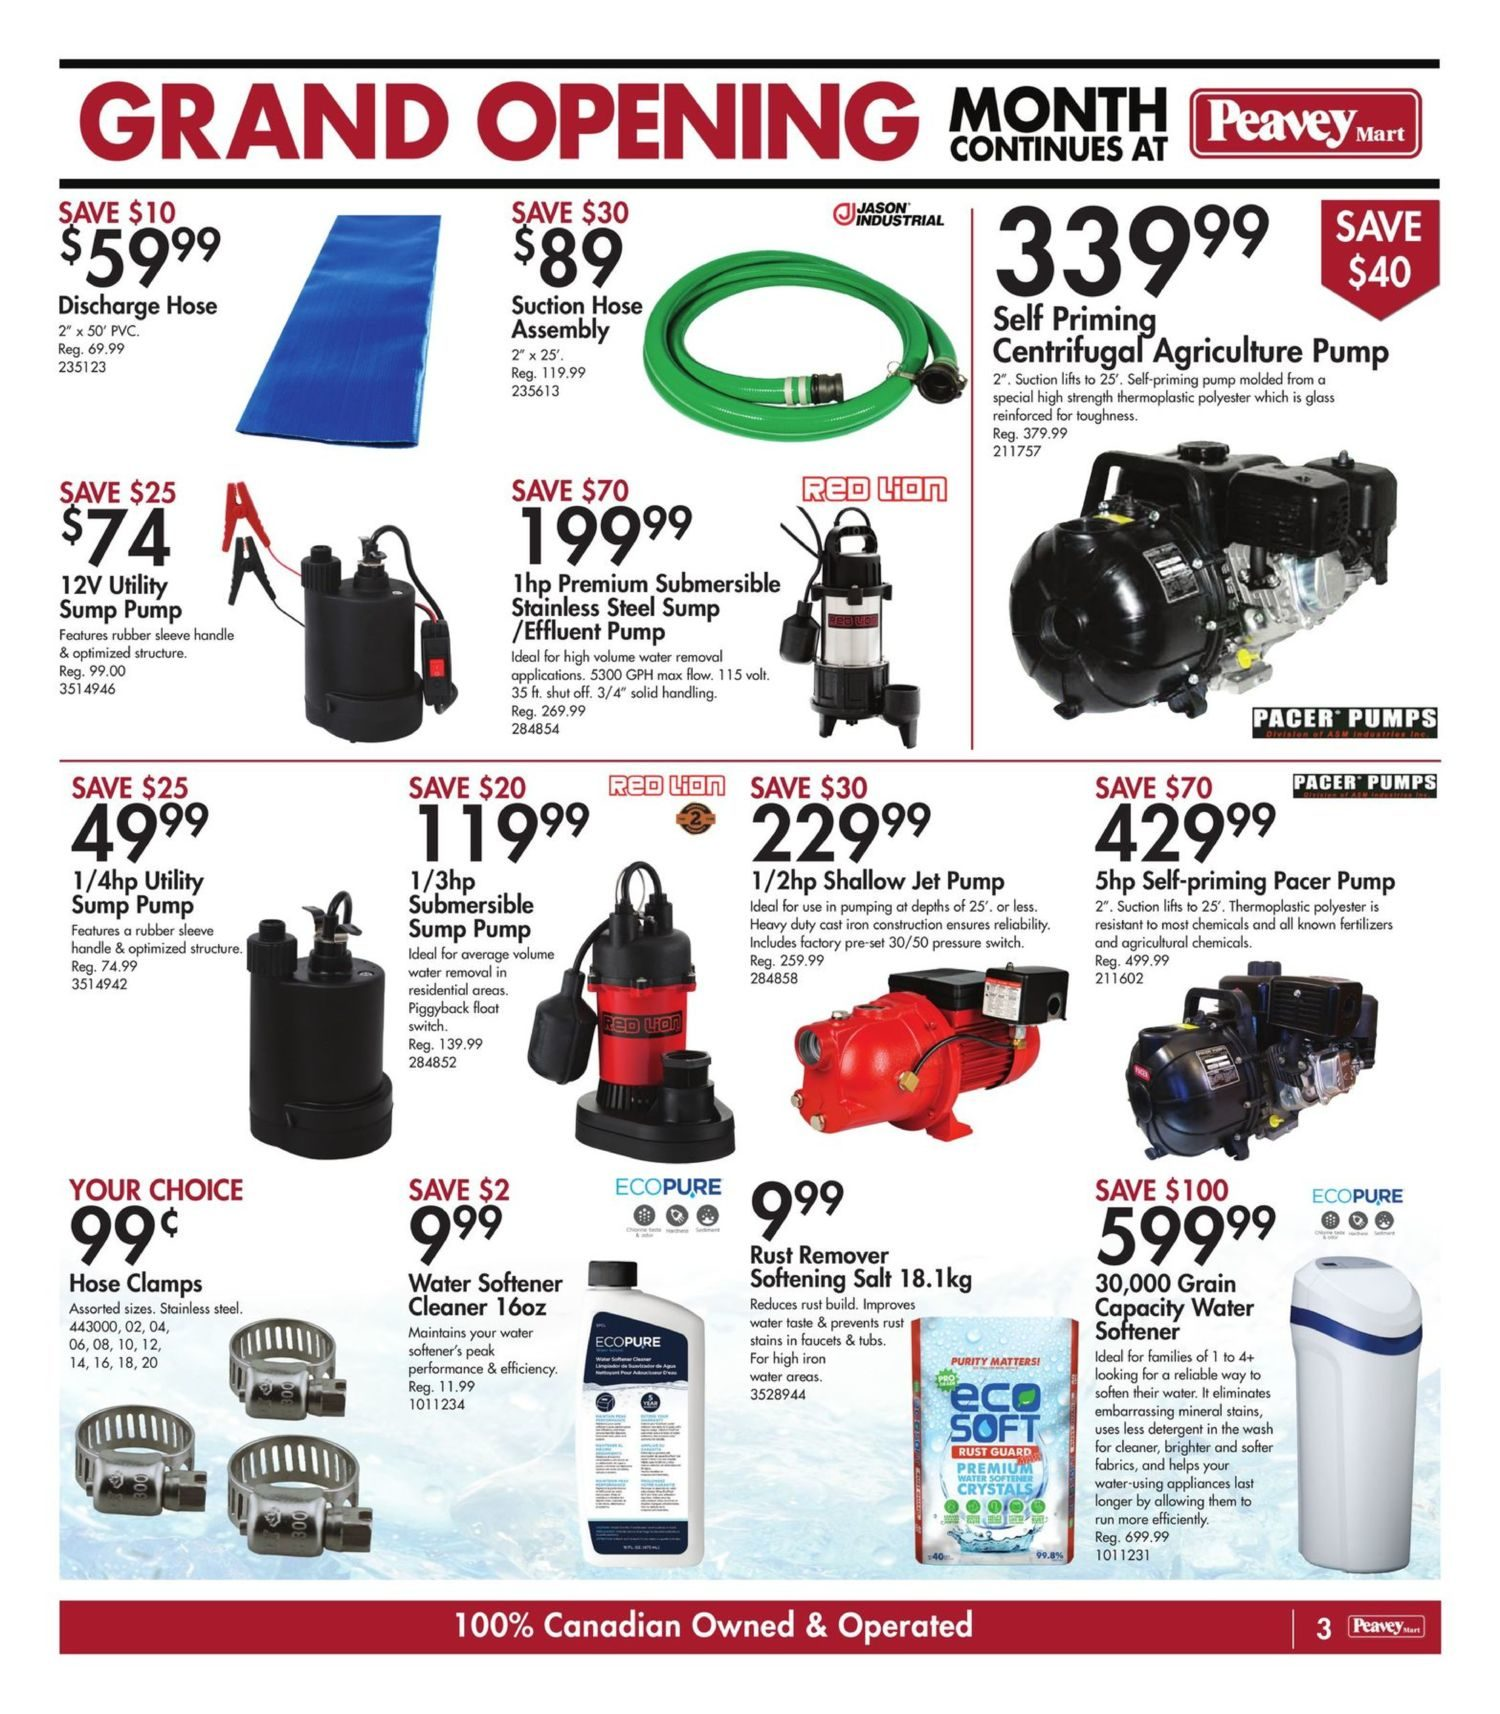 Peavey Mart - Weekly Flyer Specials - National Grand Opening Celebration - Page 5